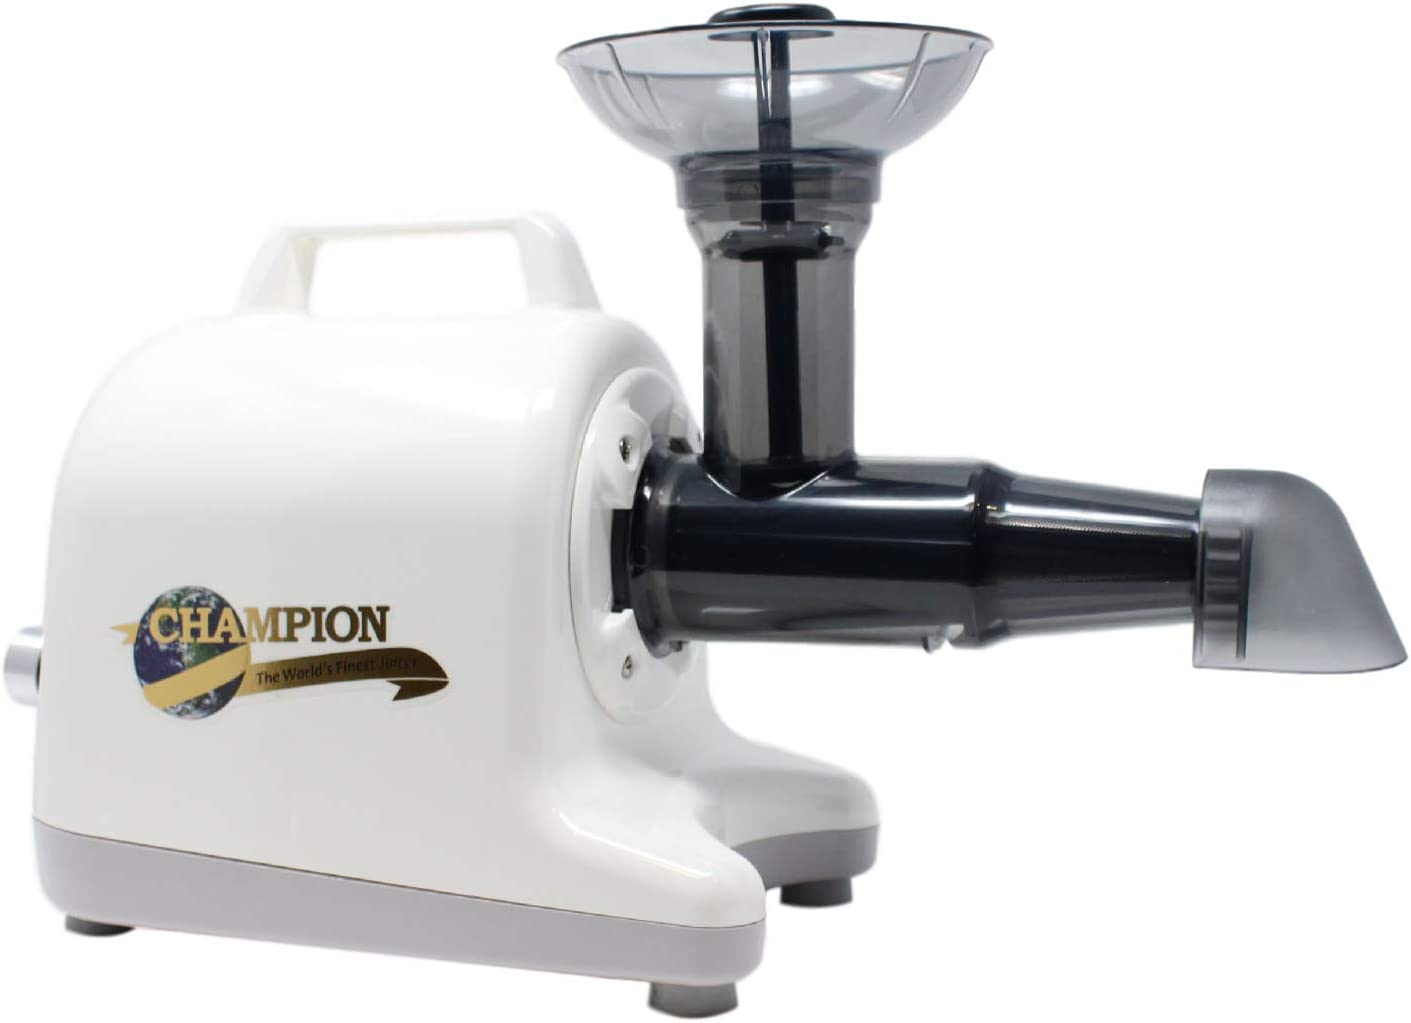 Champion Professional 5000 Dual Auger Variable Speed Masticating Juicer - Ivory